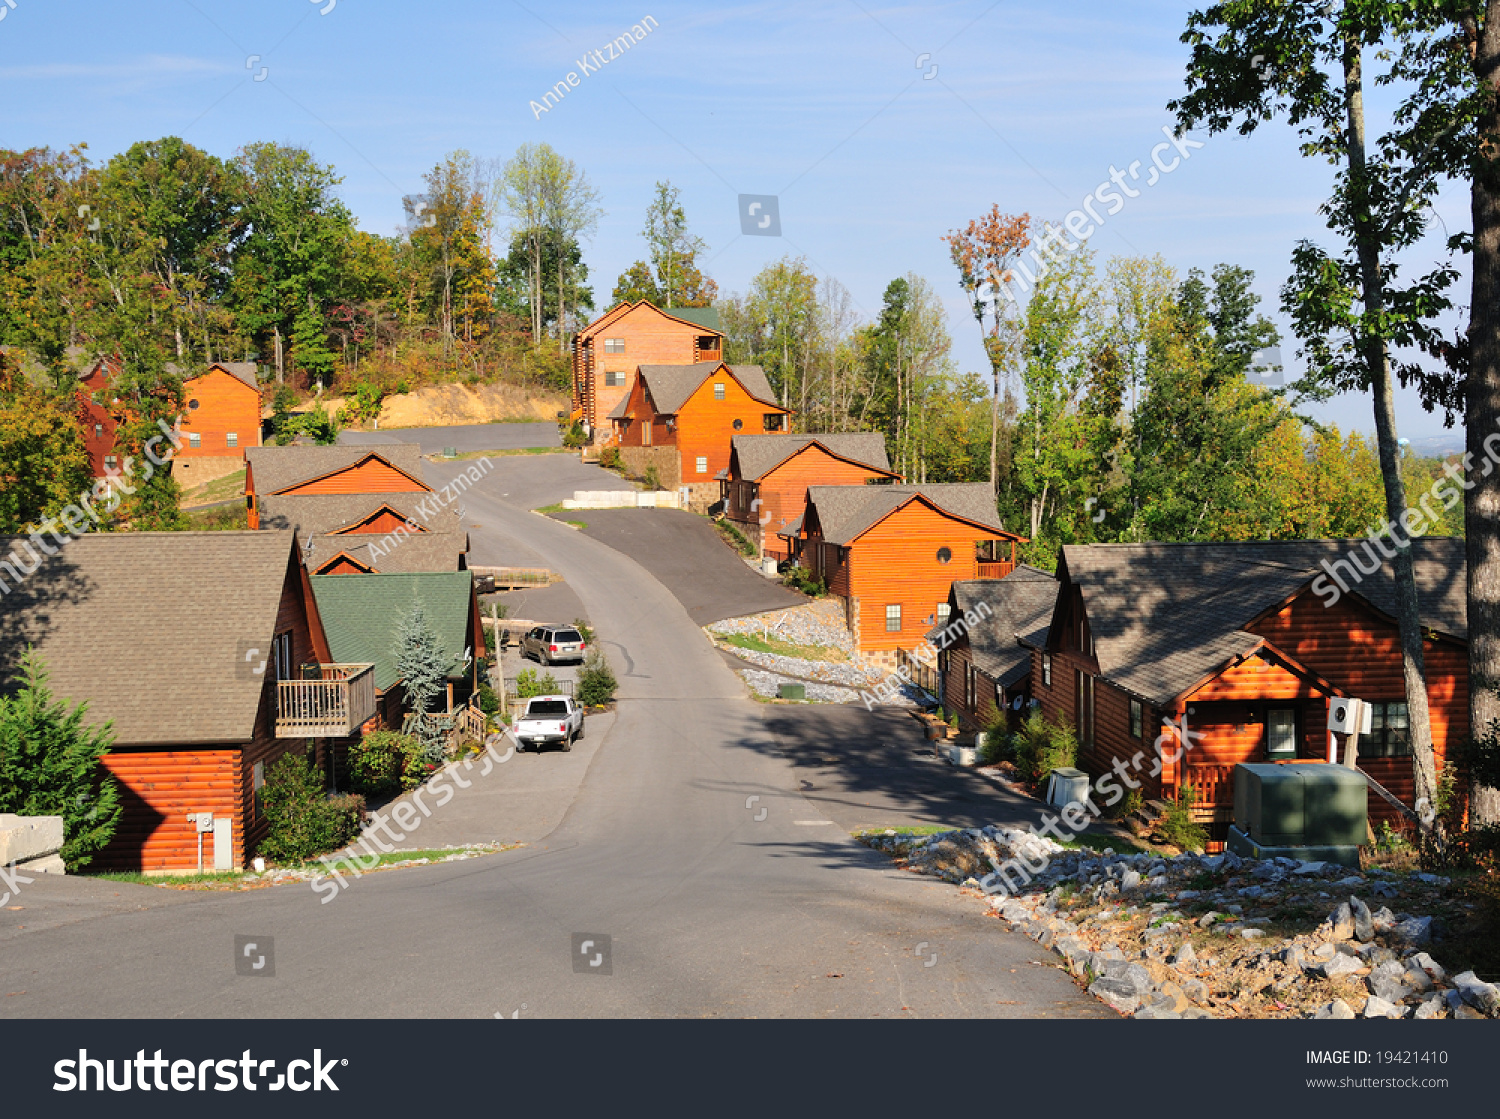 Vacation rental cabins in the mountains above pigeon forge in tennessee usa in fall